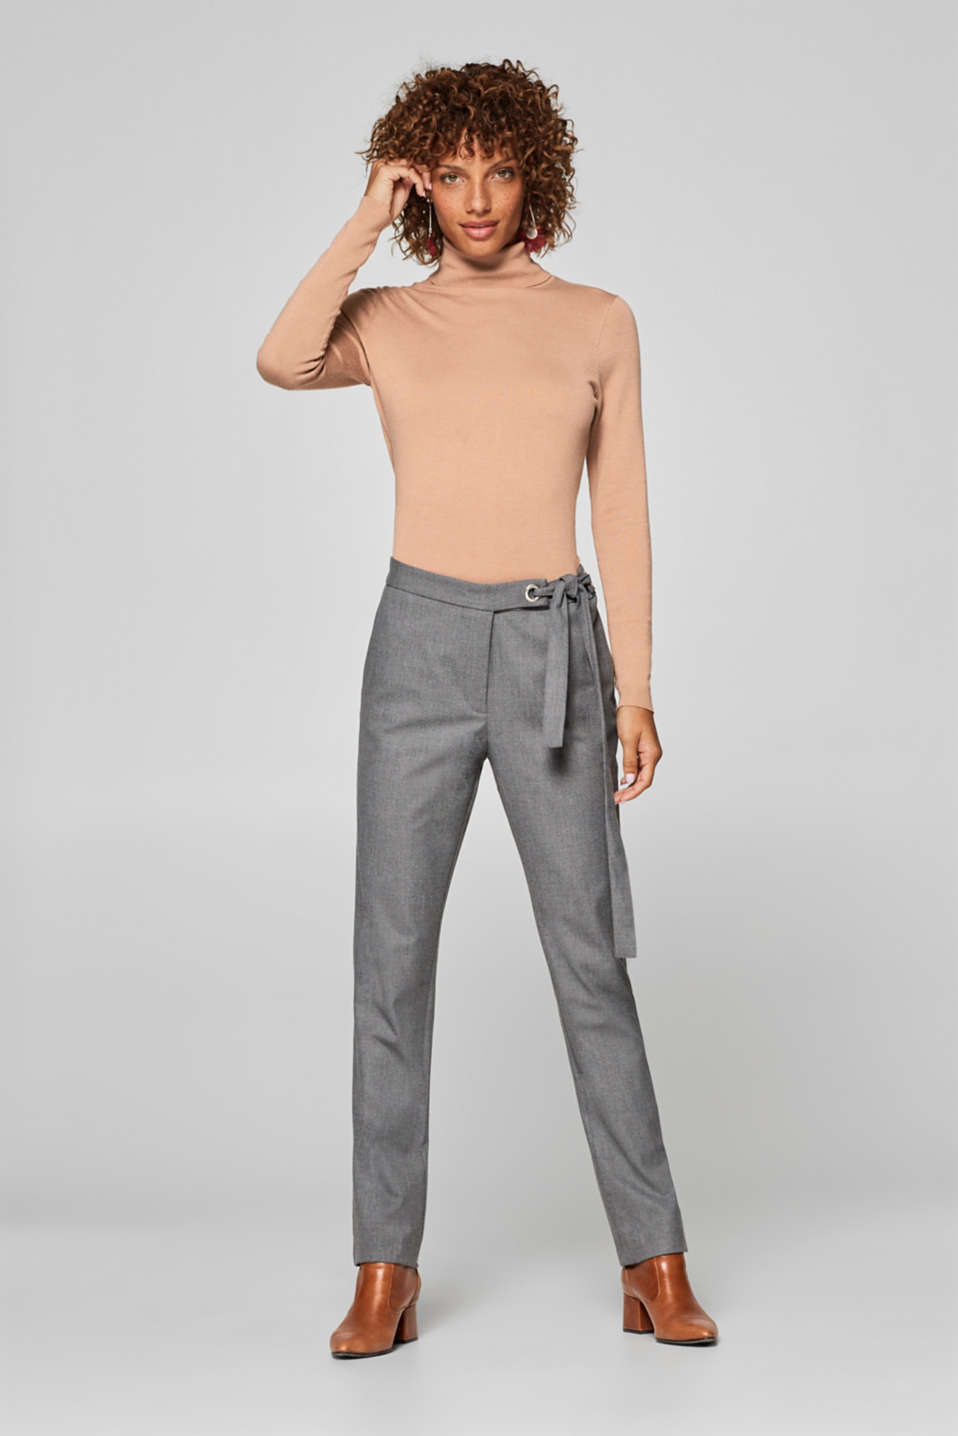 edc - Stretch trousers with pinstripes and knot details